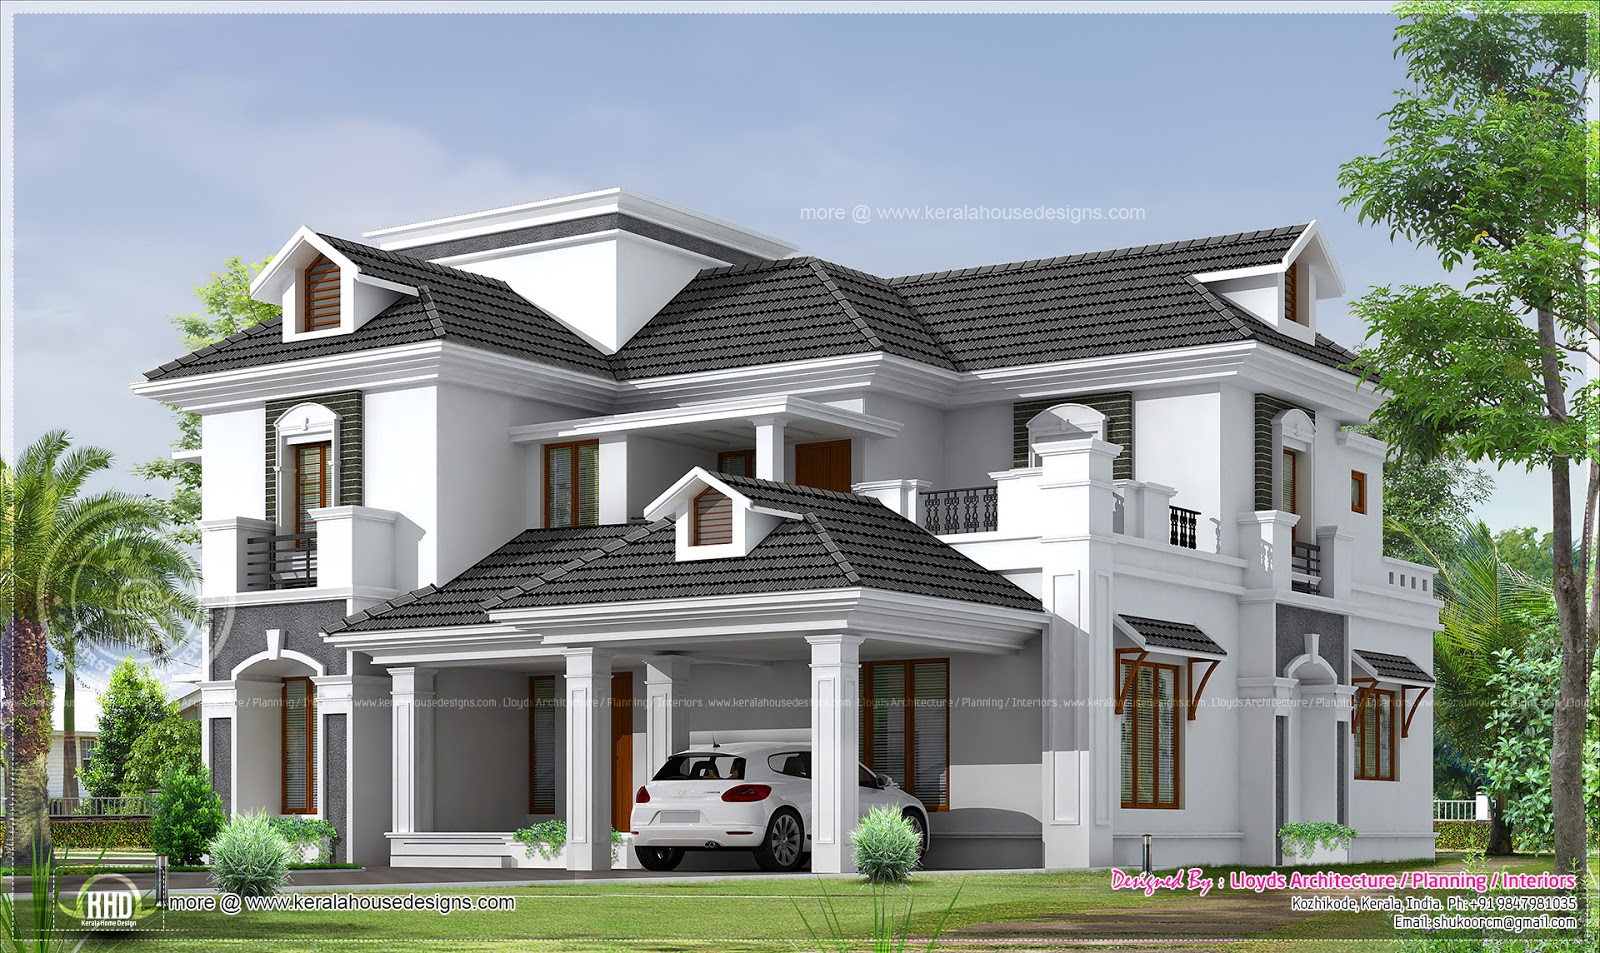 2951 sqft 4 bedroom bungalow floor plan and 3D View  House Design Plans